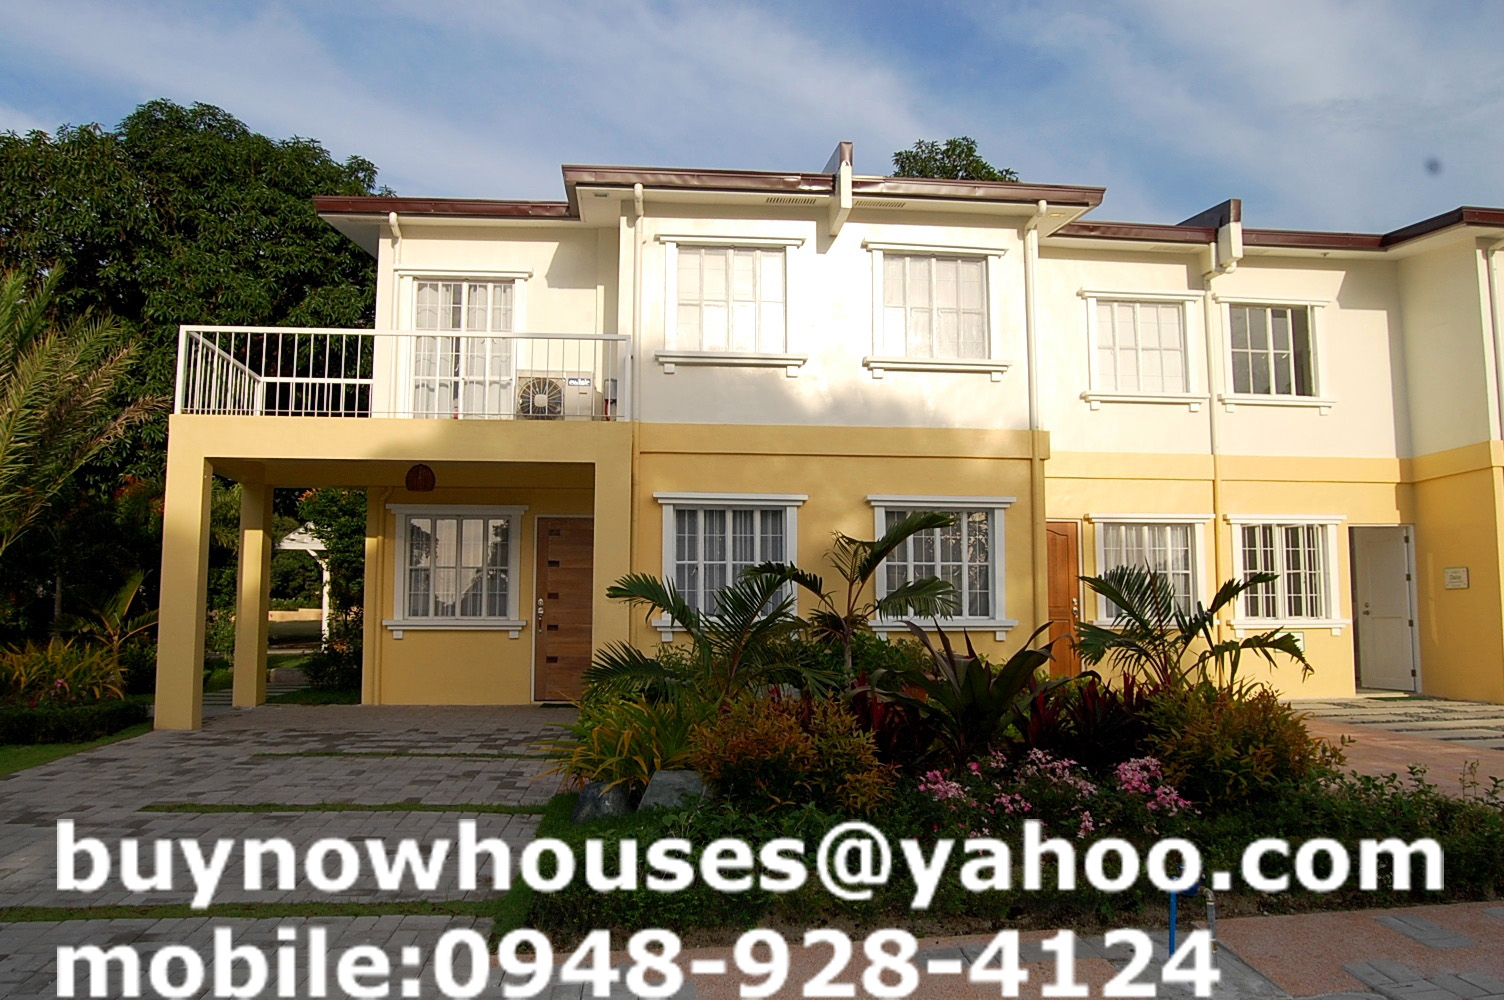 TOWNHOUSE FOR SALE AFFORDABLE Daisy 3 br 2 tb 7.7k Mos.@ Garden Groove It's your Great Oppurtunity That's your Dream Townhouse will be come True!DAISY Townhouse @ Garden Groove. 10k Reservation, But Now Only 5k... Until November 30,2012